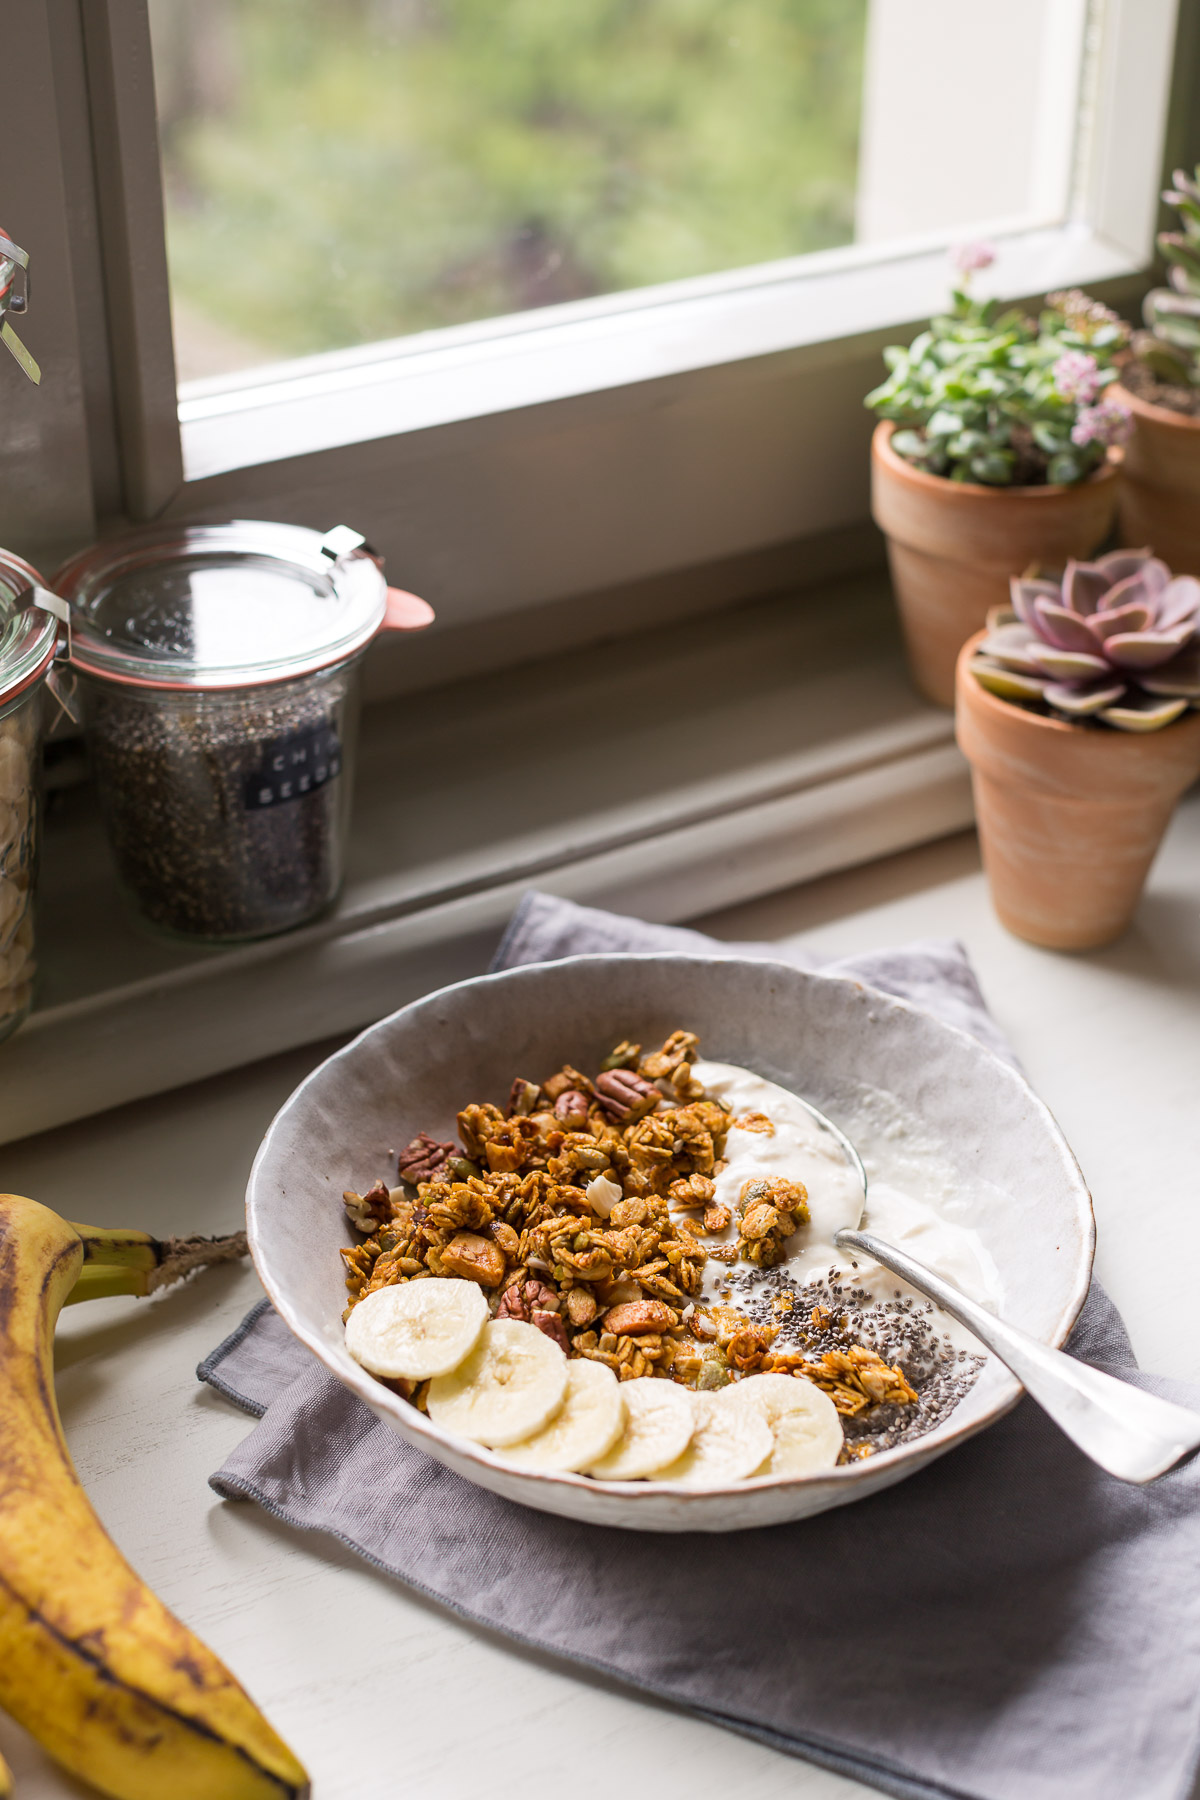 simple 30 MINUTES VEGAN BANANA BREAD GRANOLA #glutenfree recipe banana bread granola vegan senza glutine ricetta light con sciroppo d acero dietetica